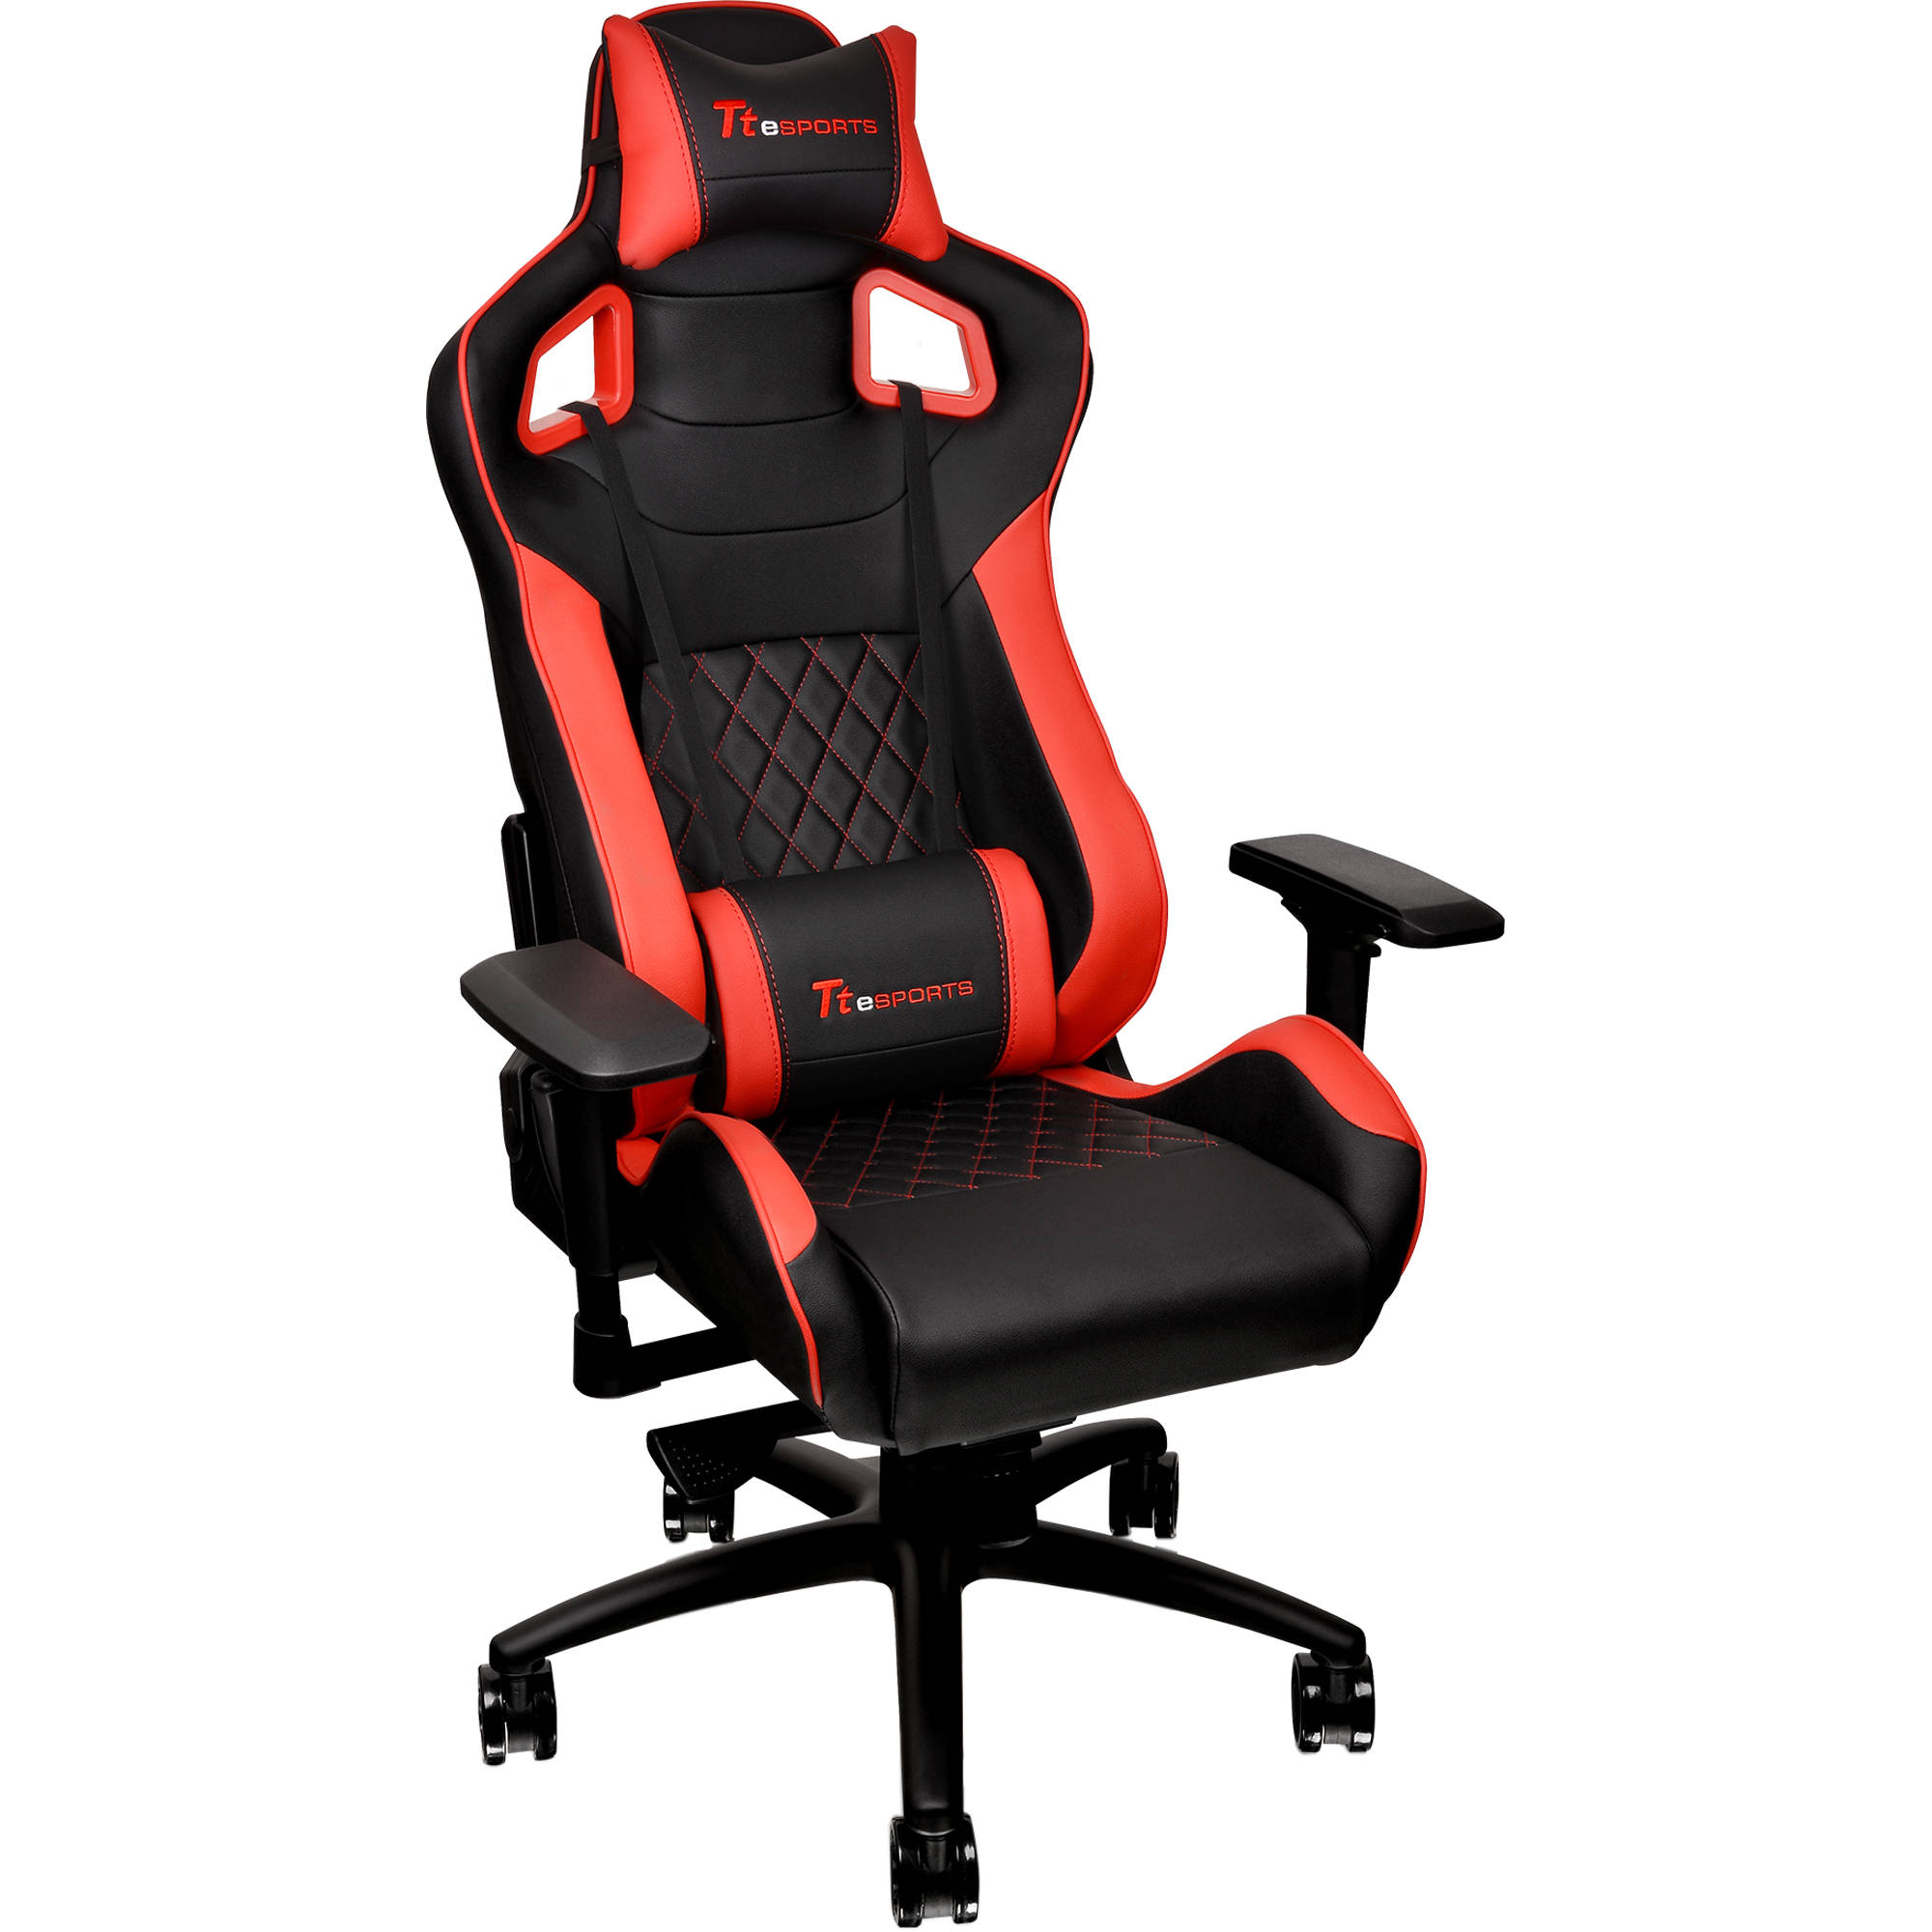 Fantastic Thermaltake Tt Esports Gt Fit F100 Gaming Chair Red Black Onthecornerstone Fun Painted Chair Ideas Images Onthecornerstoneorg